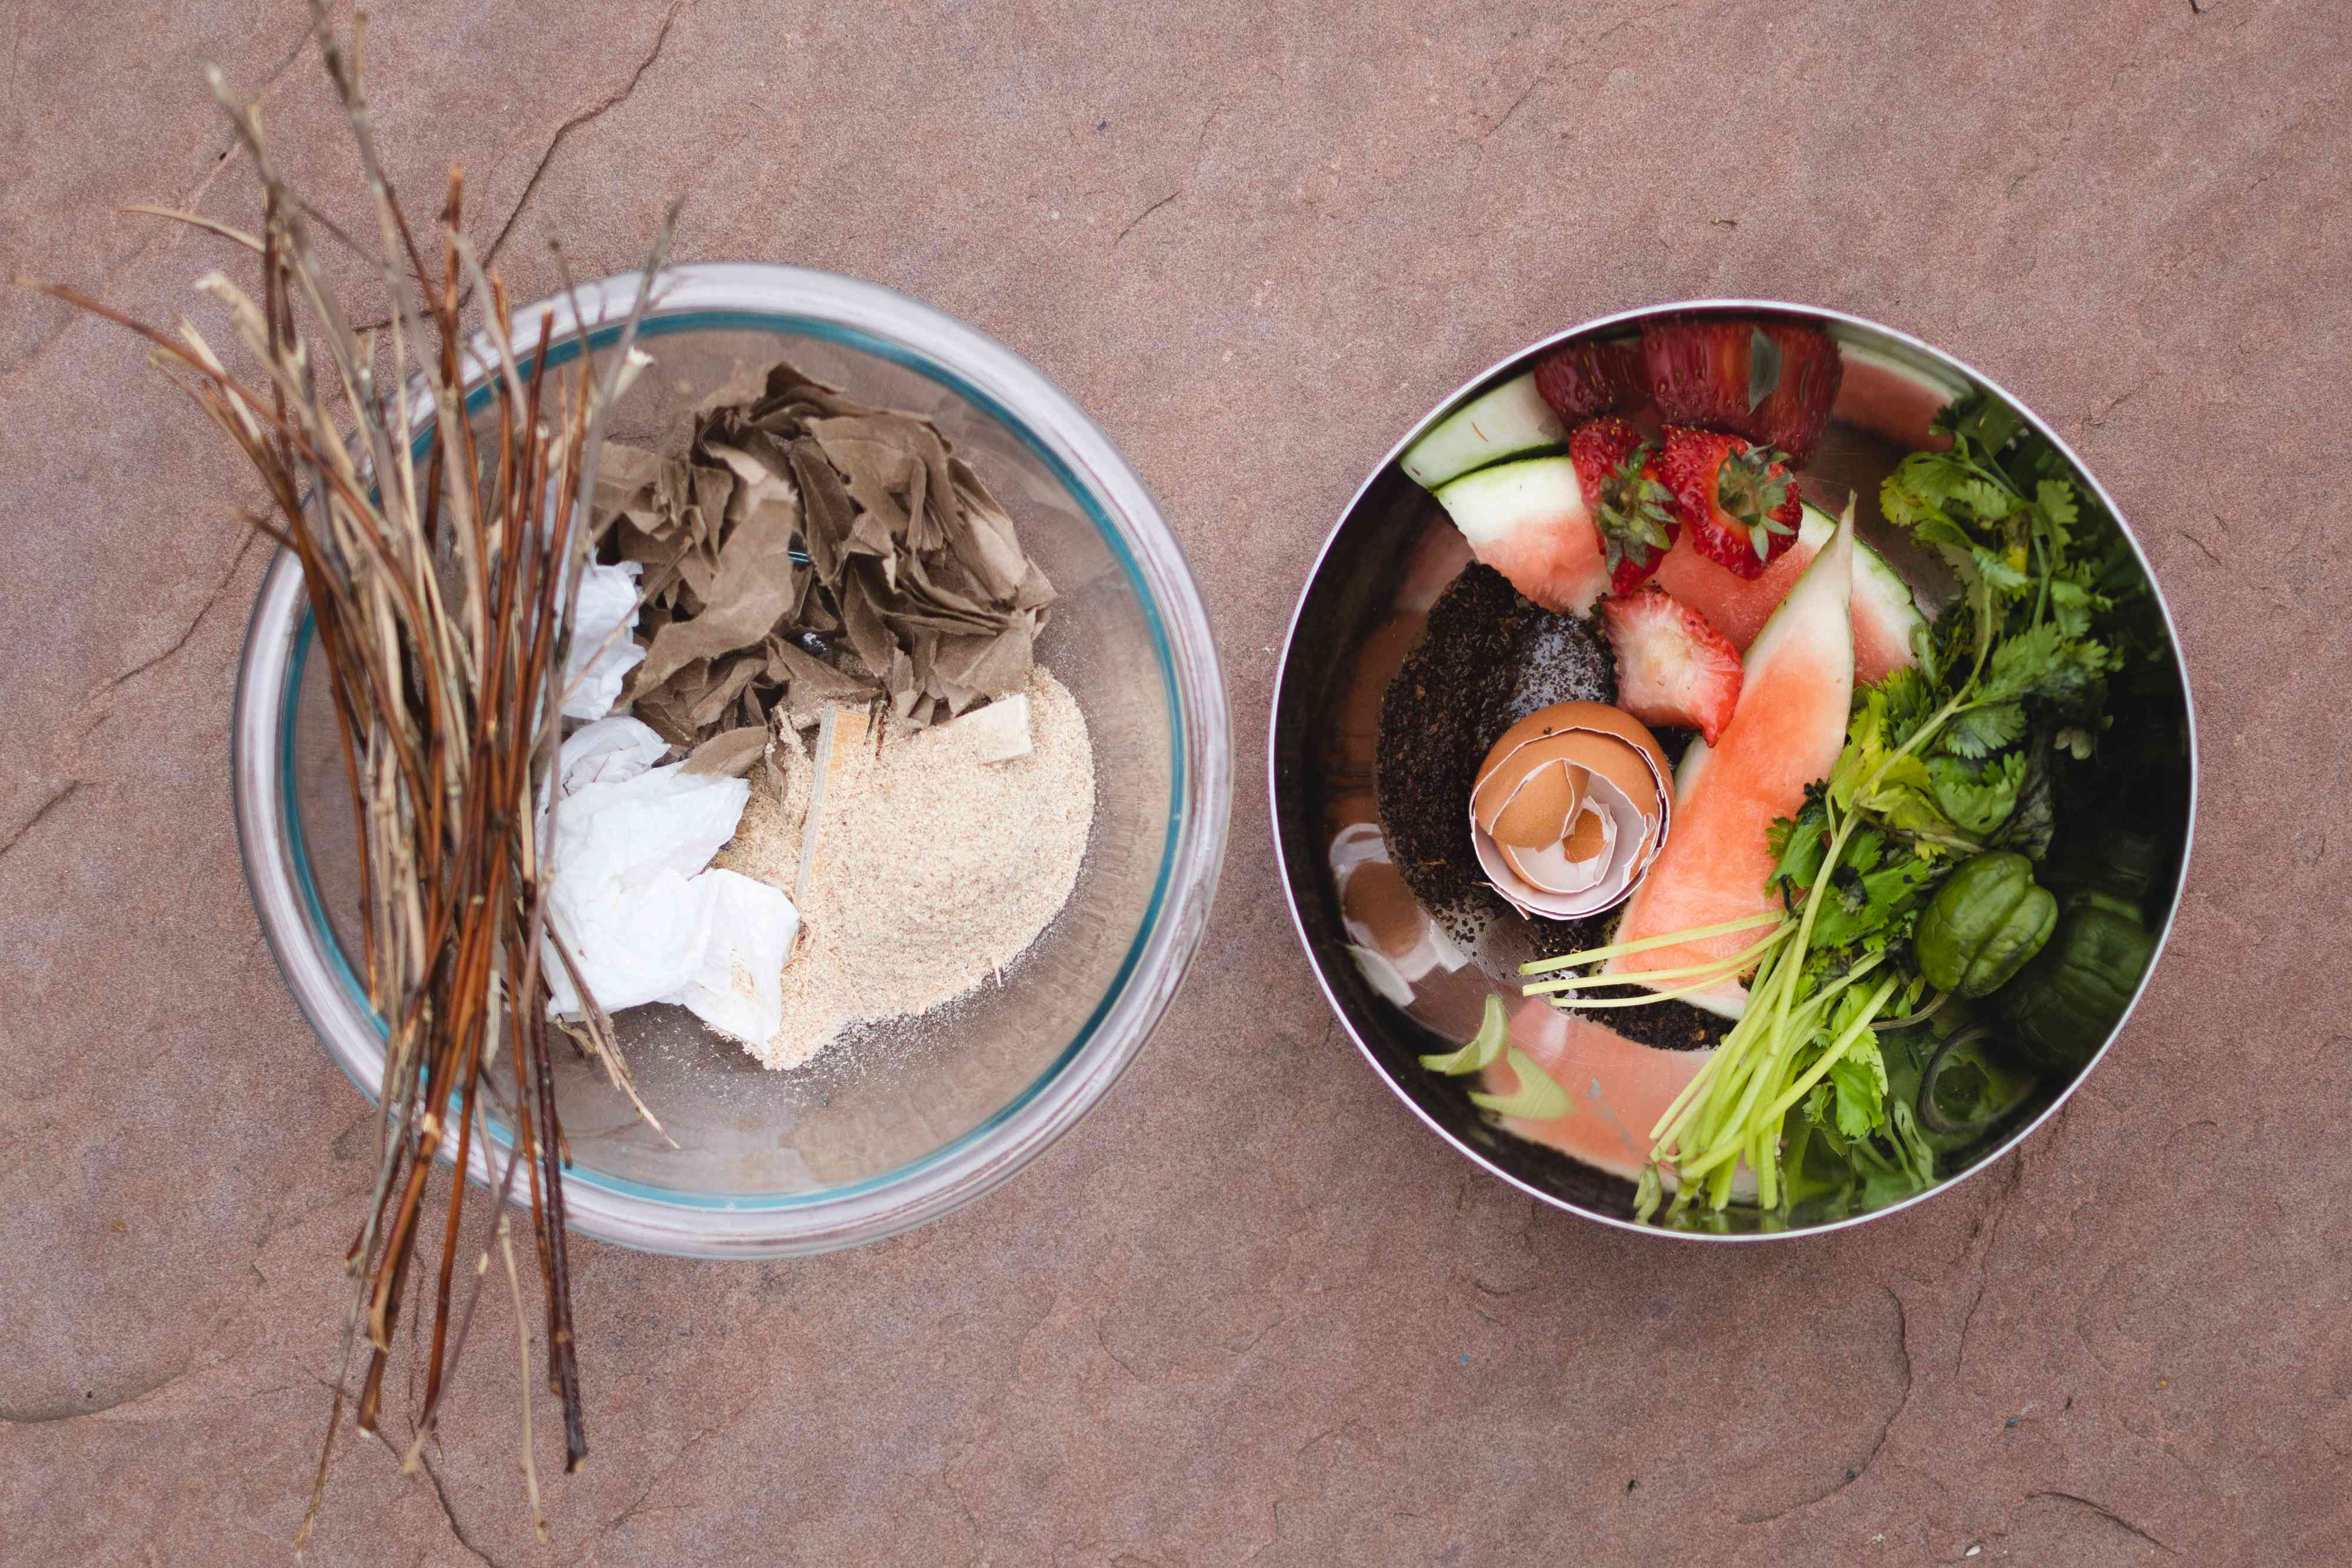 Separate bowls with green and brown material ingredients to make compost